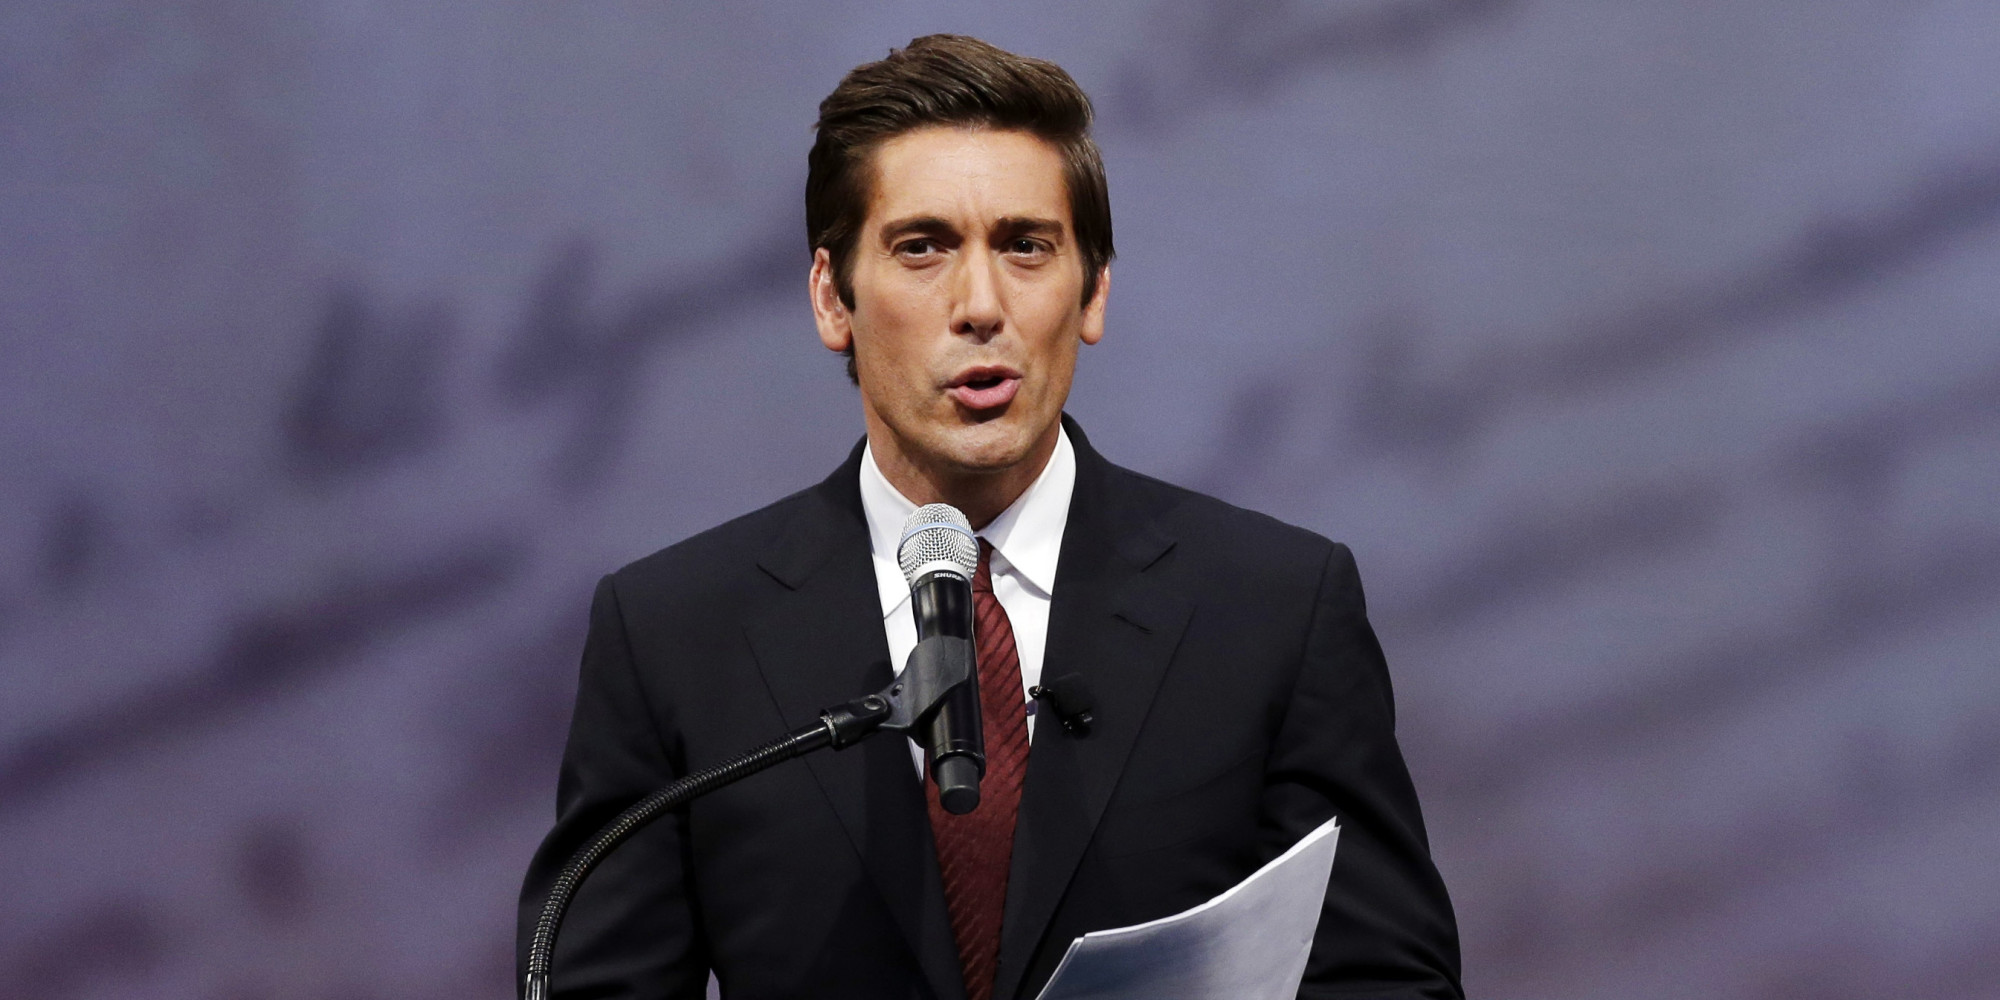 ABC News David Muir Finally Addresses Brian Williams